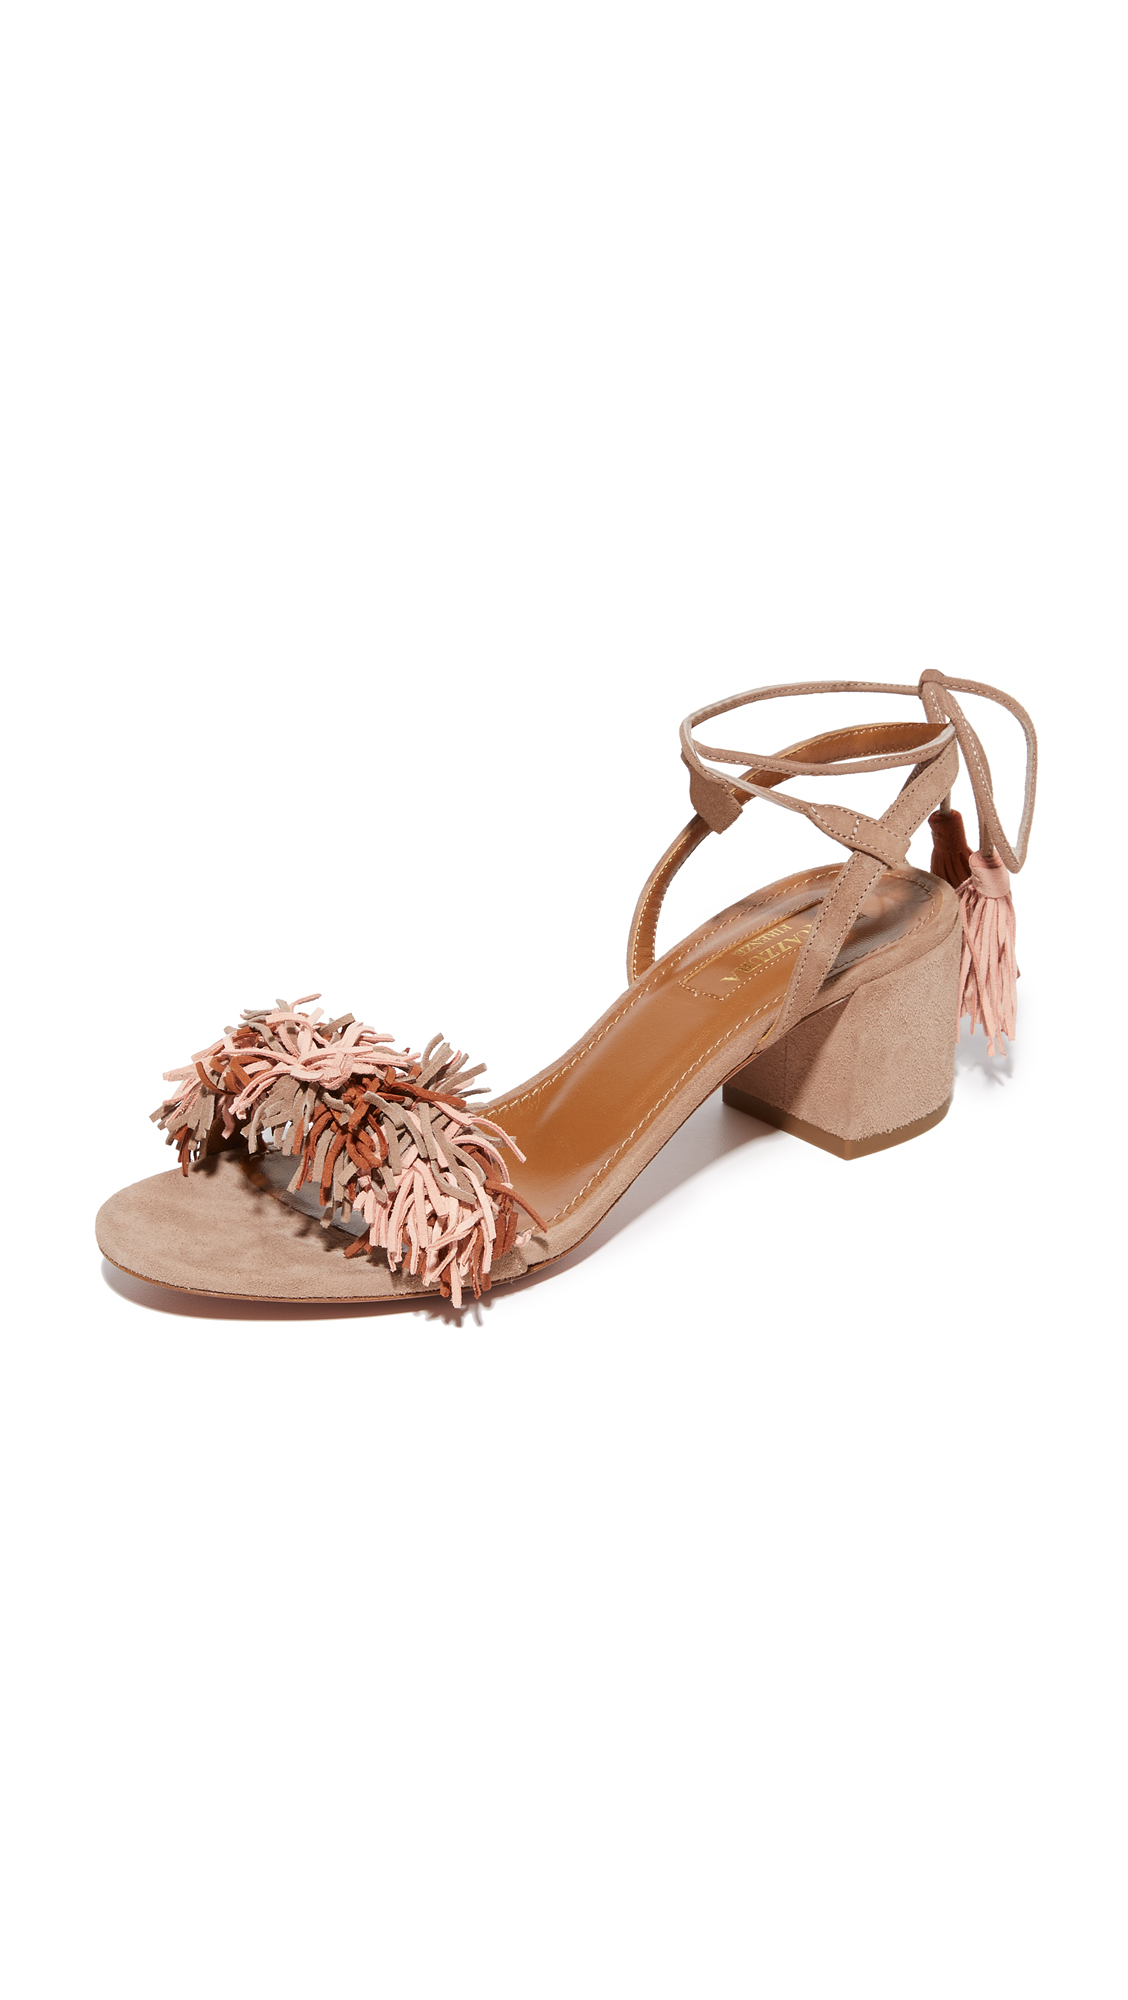 Aquazzura Wild Thing City Sandals - Multi Terracotta